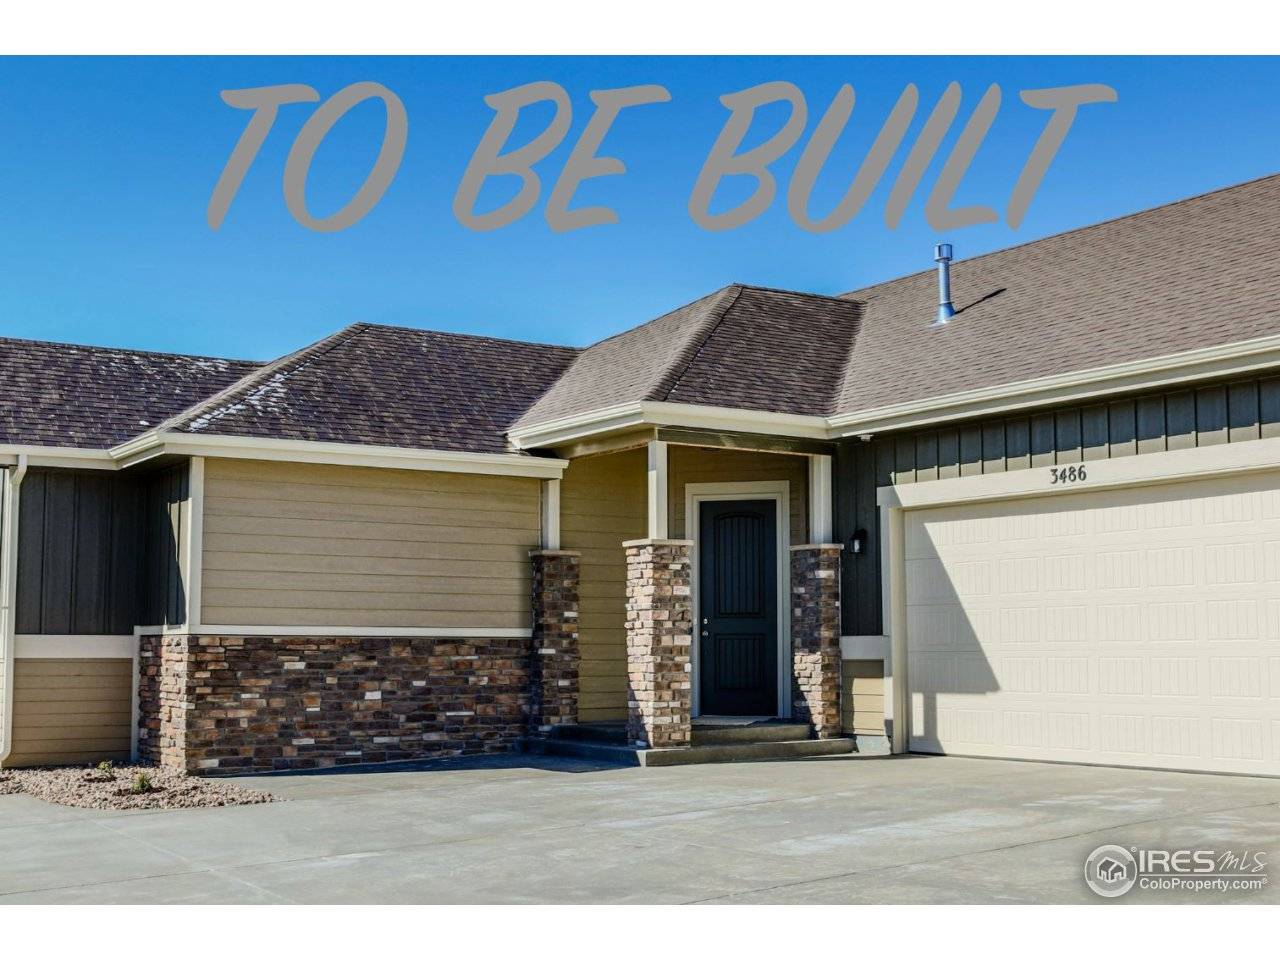 3556 Prickly Pear Dr, Loveland, CO 80537